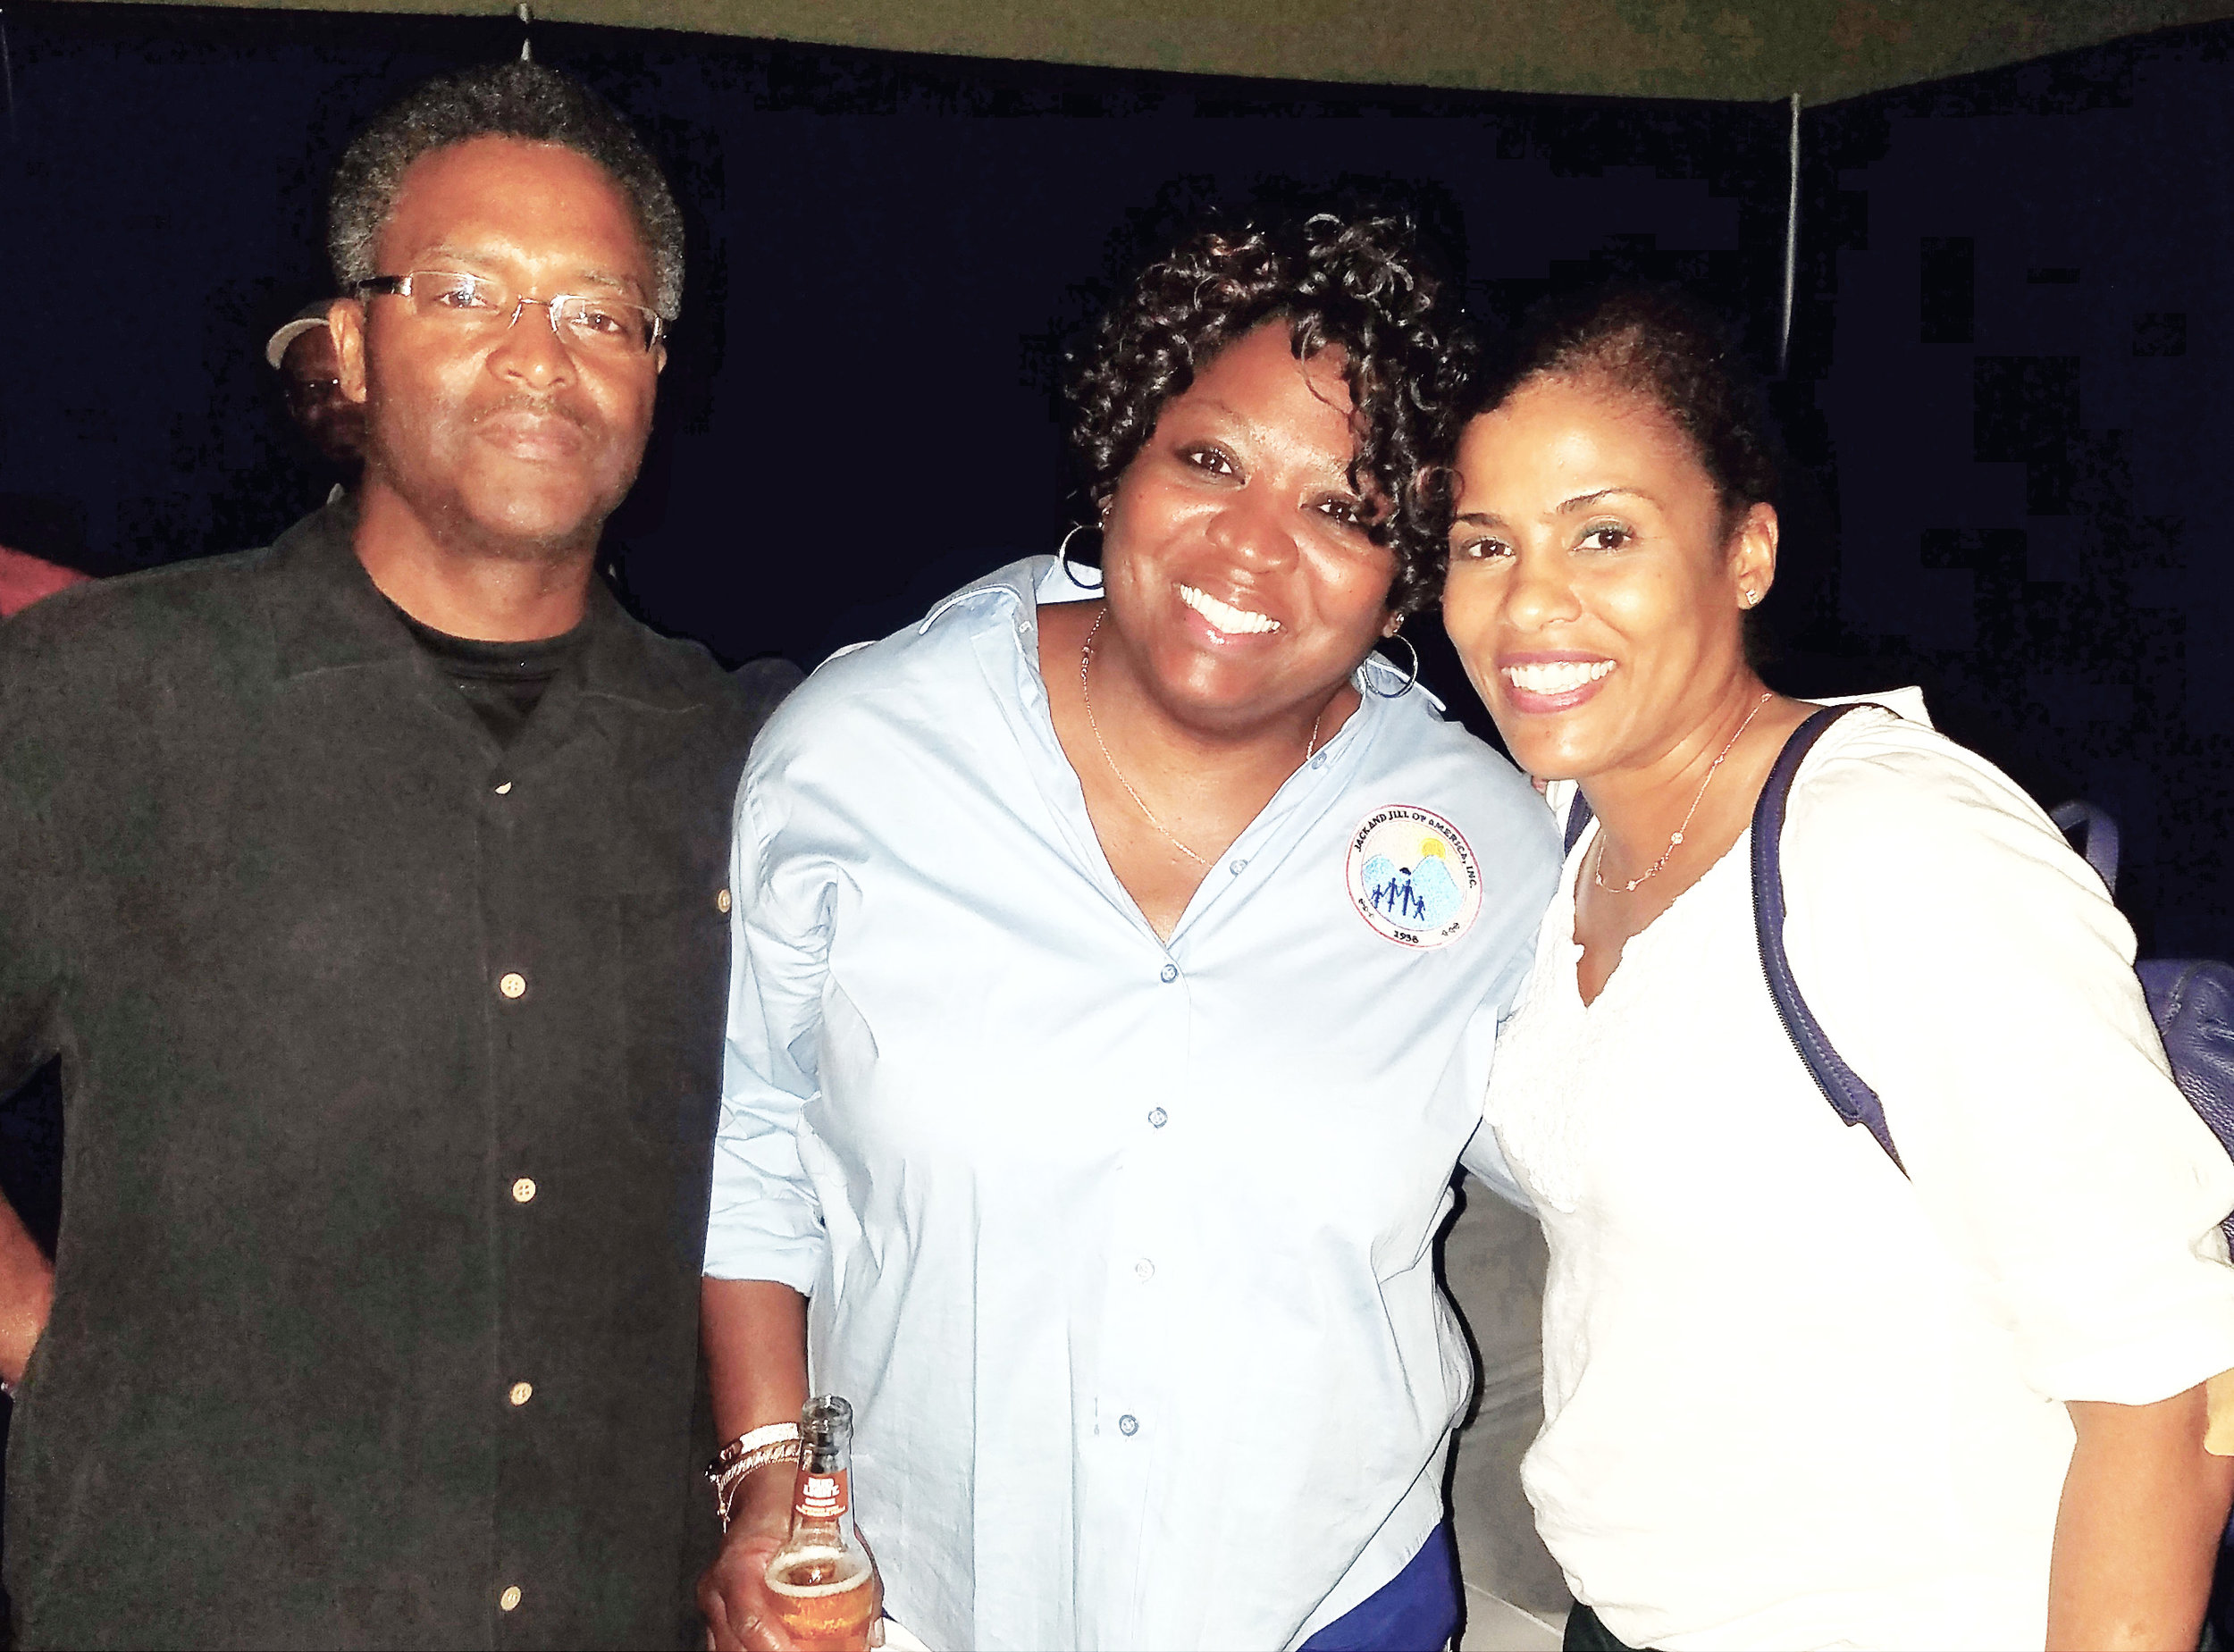 Phillip and Dr. Jacqueline O'Donald with Dr. Pam Perry